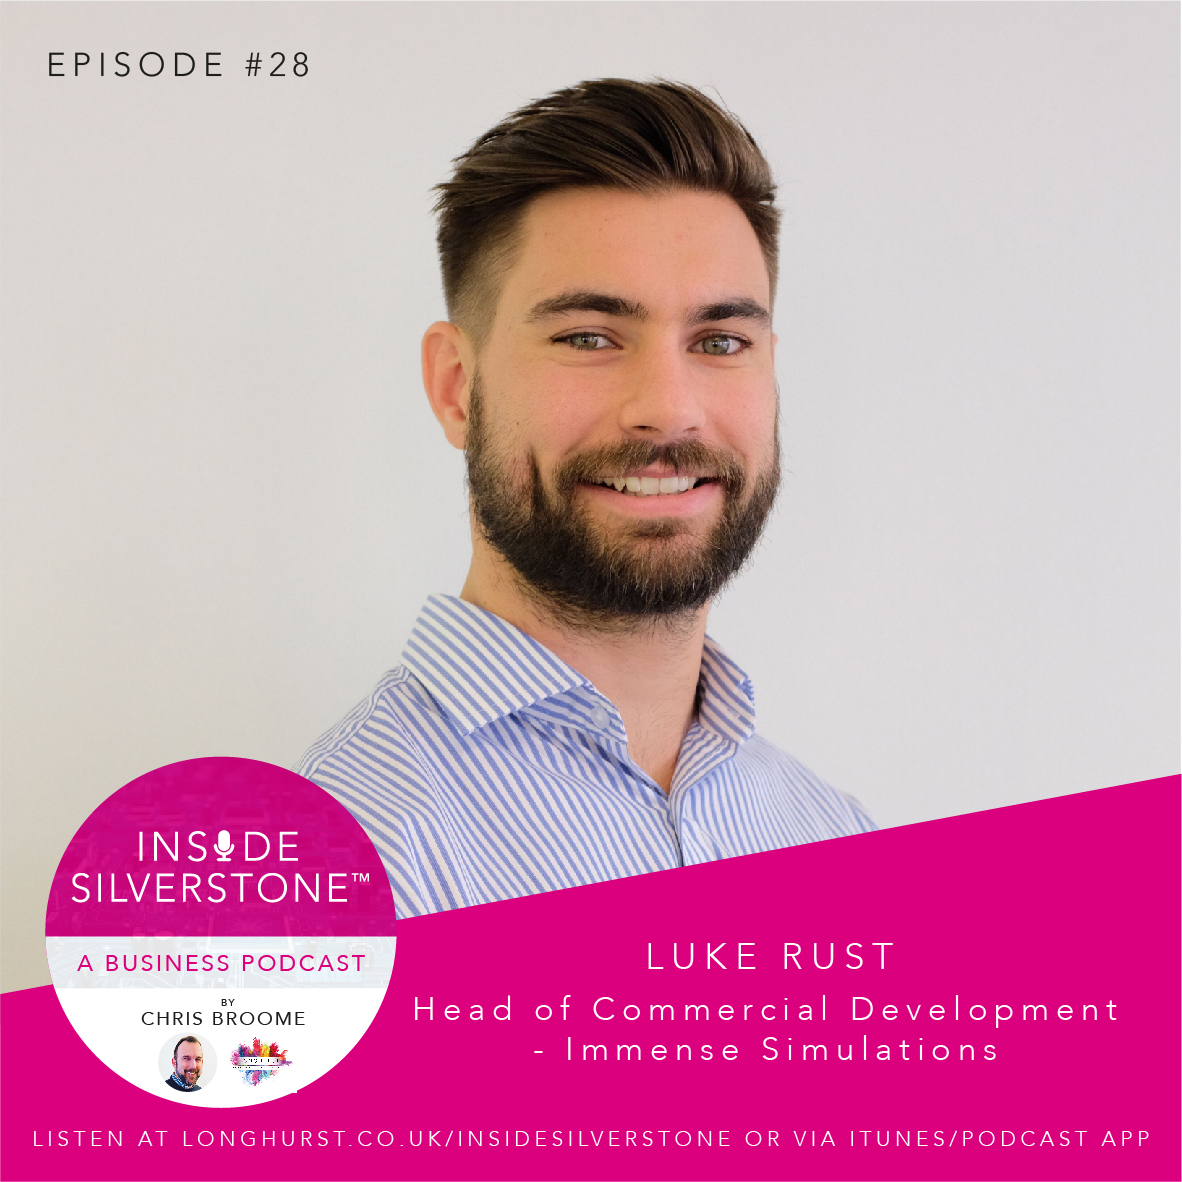 Luke Rust, Head of Commercial Development at Immense Simulations